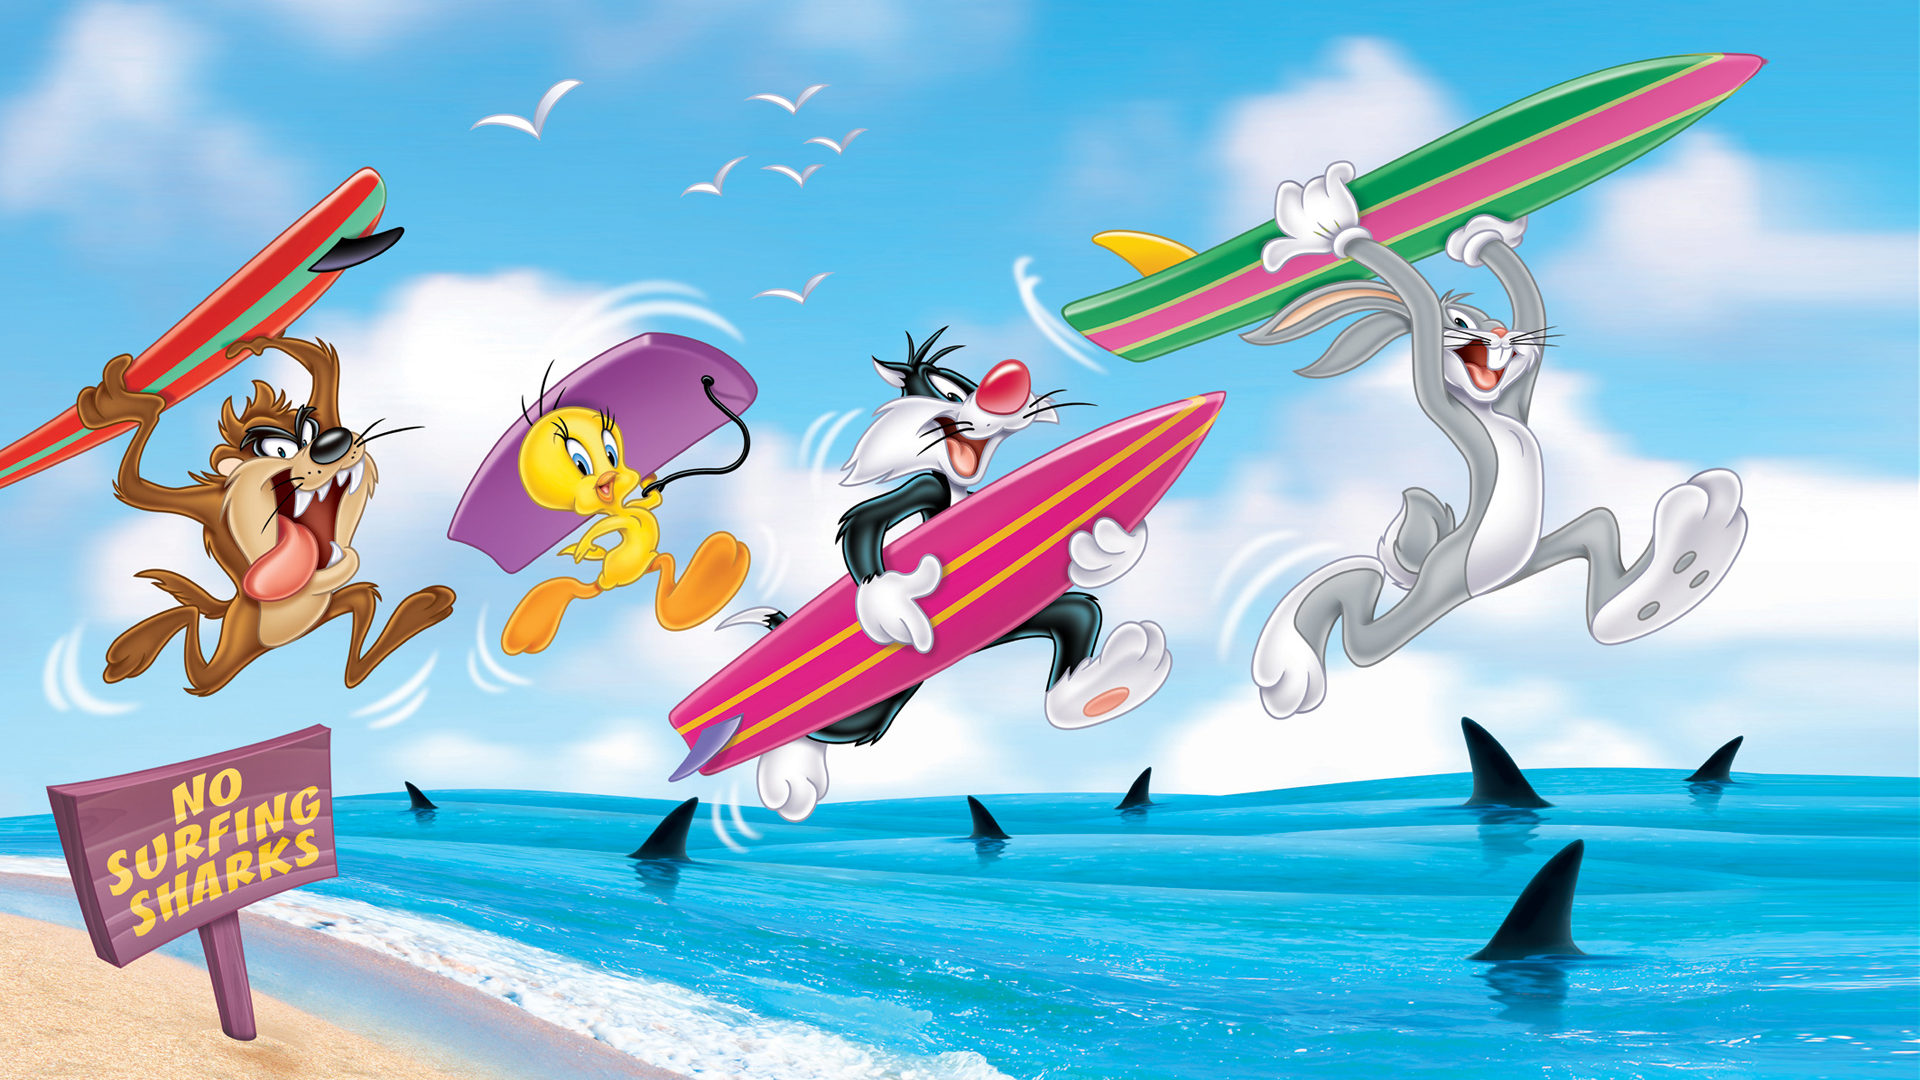 Cars The Movie Christmas Wallpaper Bugs Bunny Sylvester The Cat Tweety Bird And Tasmanian